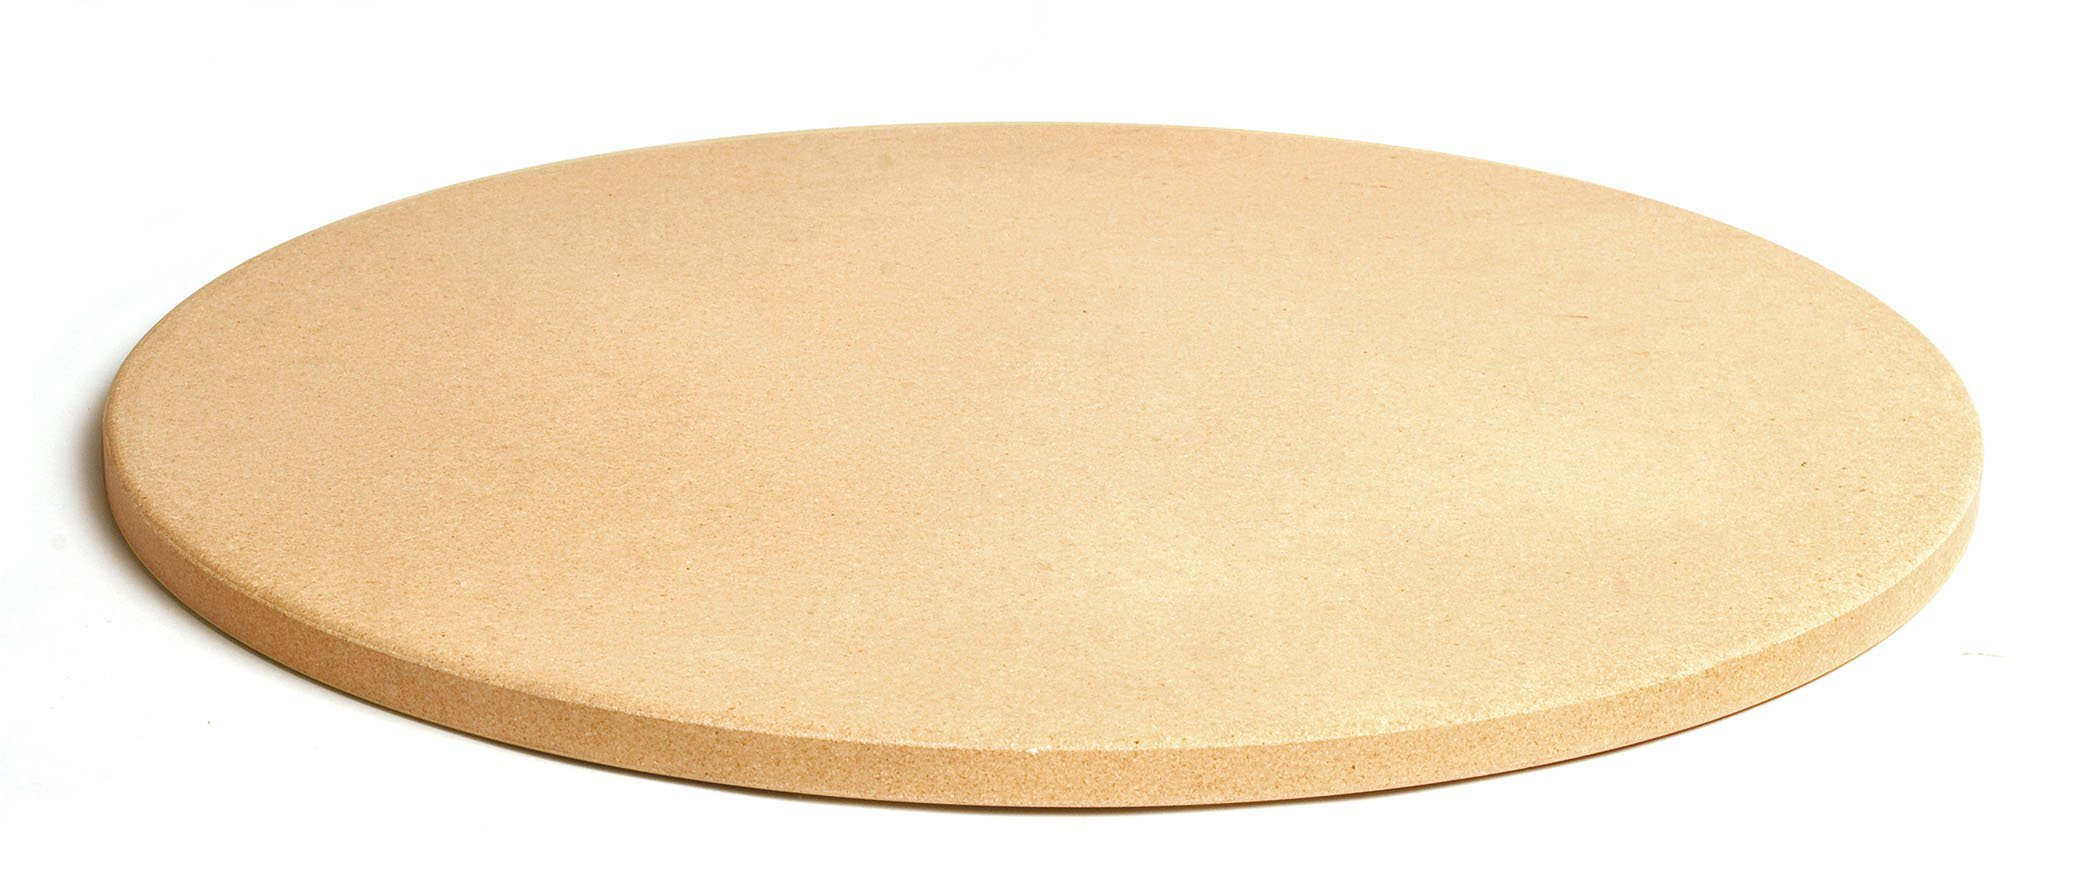 Pizzacraft 16.5'' Round ThermaBond Baking/Pizza Stone - For Oven or Grill - PC9898